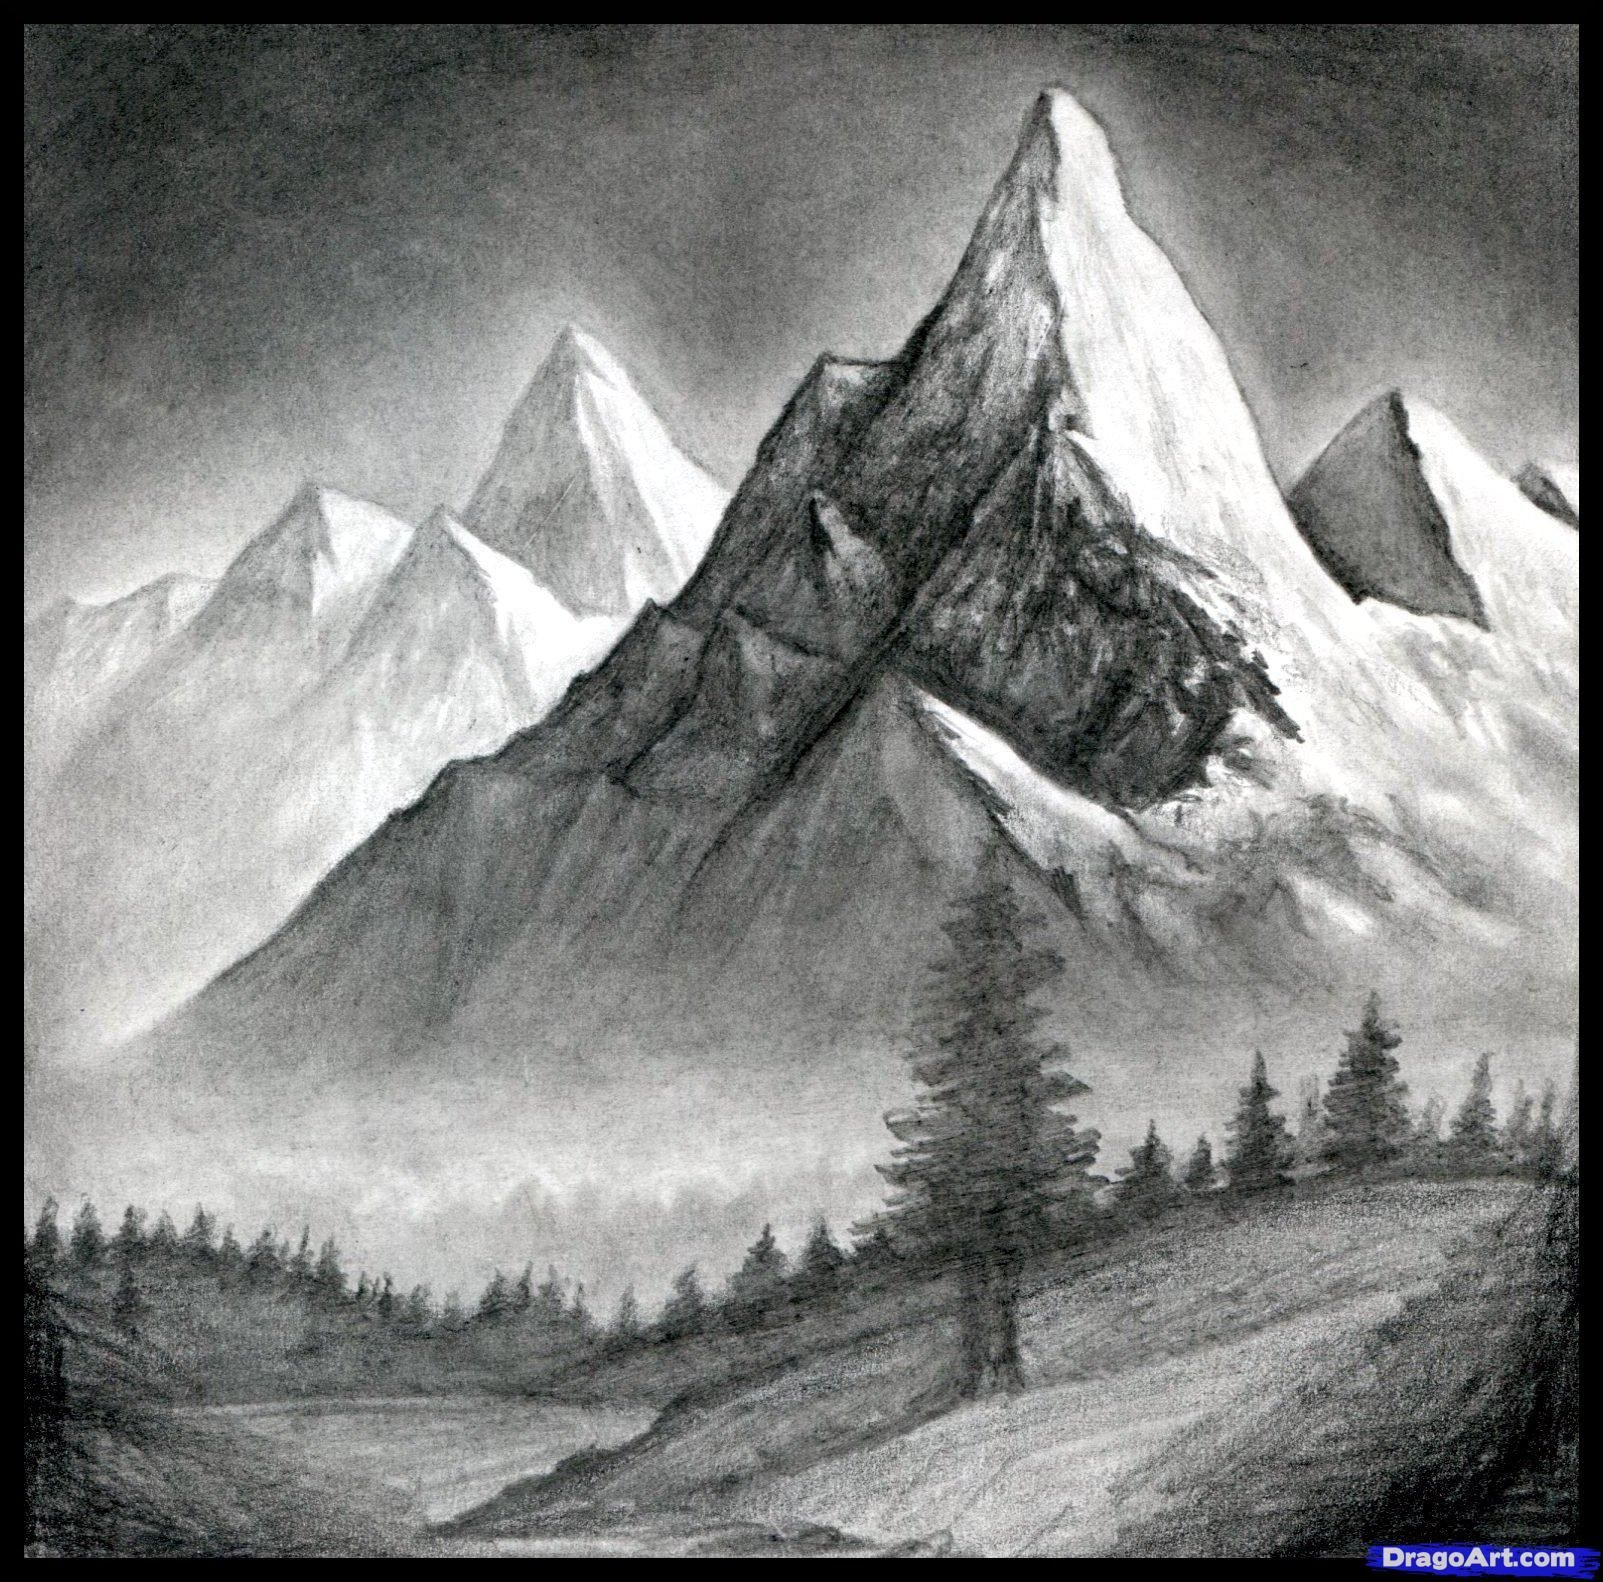 How to draw a realistic landscape draw realistic mountains step 15 landscapedrawing